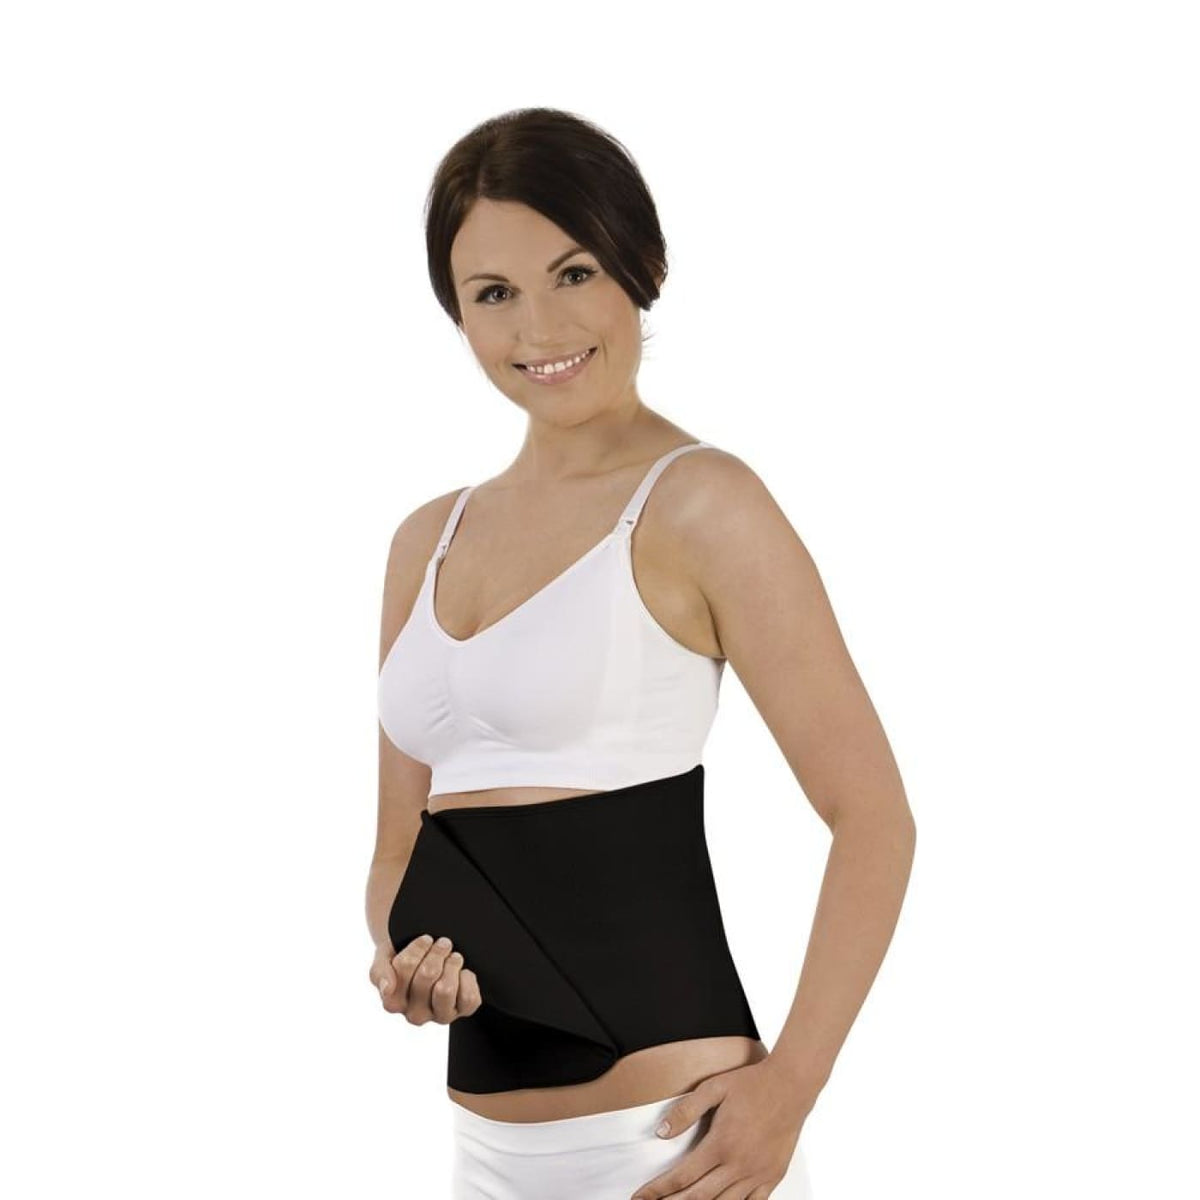 Carriwell Belly Binder - Black L/XL - FOR MUM - MATERNITY SUPPORT GARMENTS (PRE/POST)